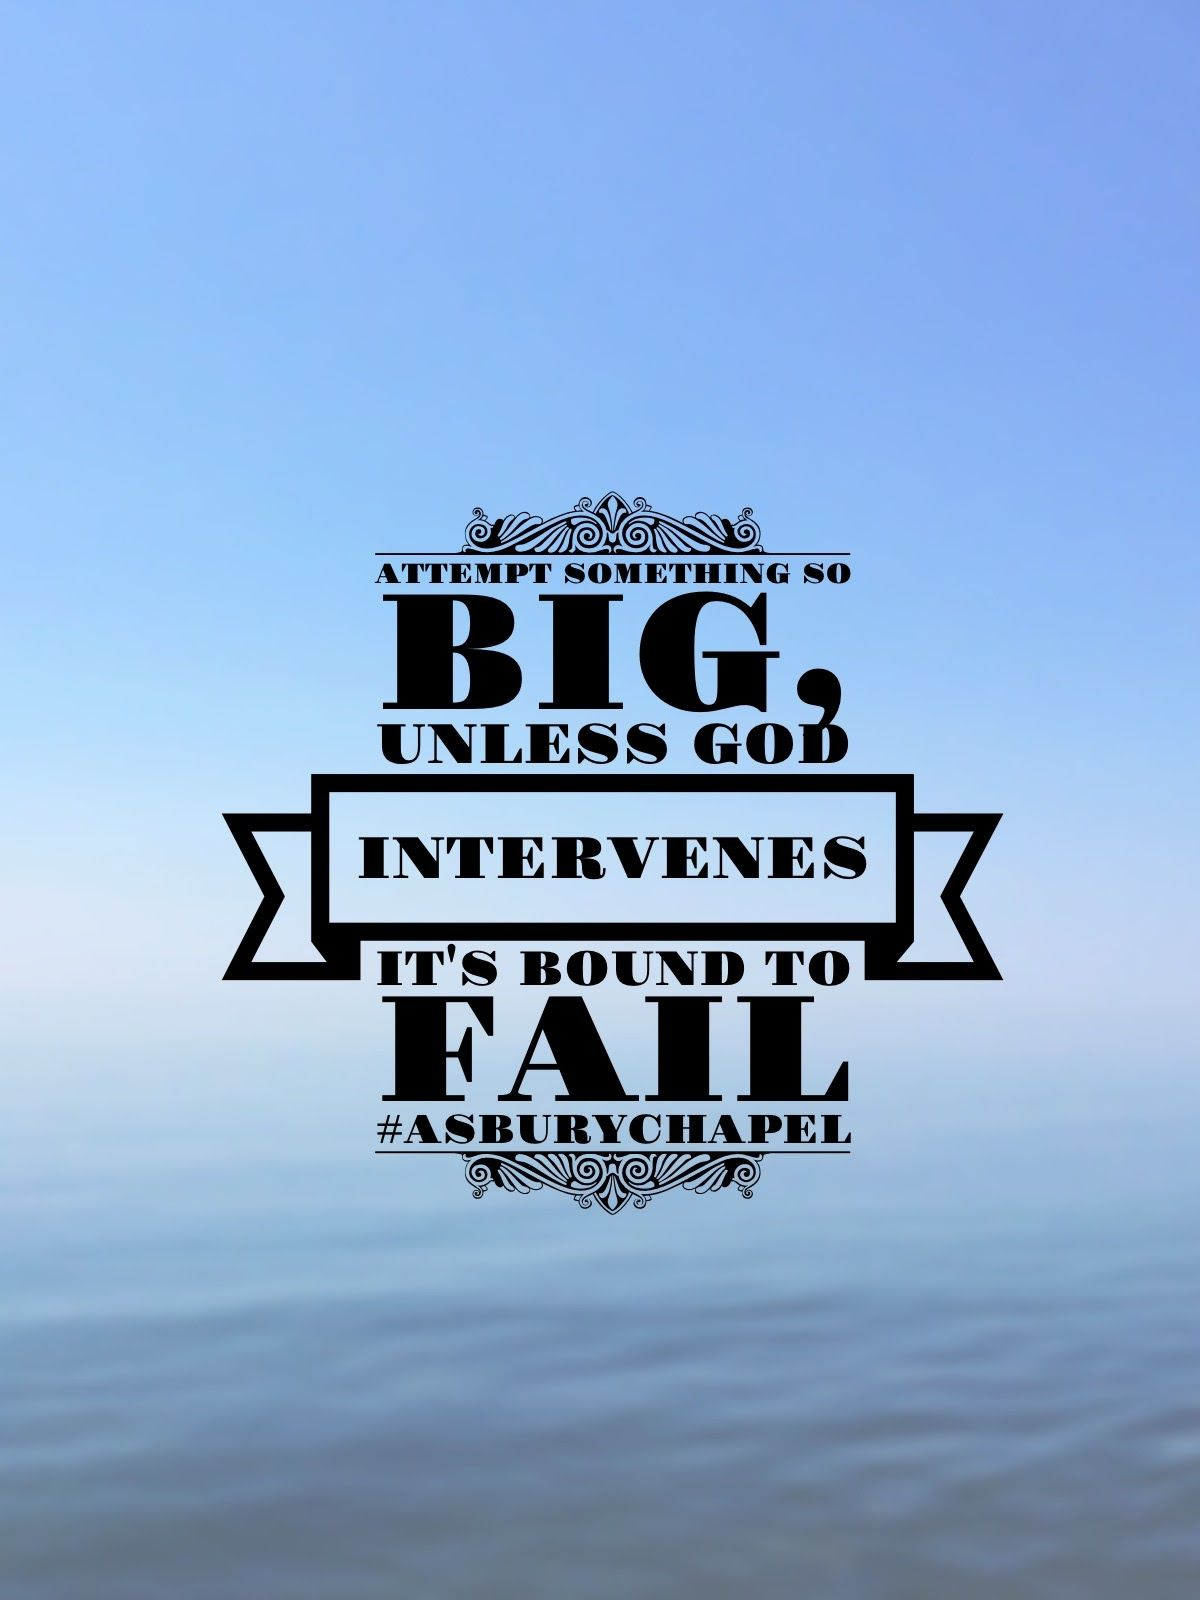 Attempt something so big, unless God intervenes, it's bound to fail #asburychapel | phone ...